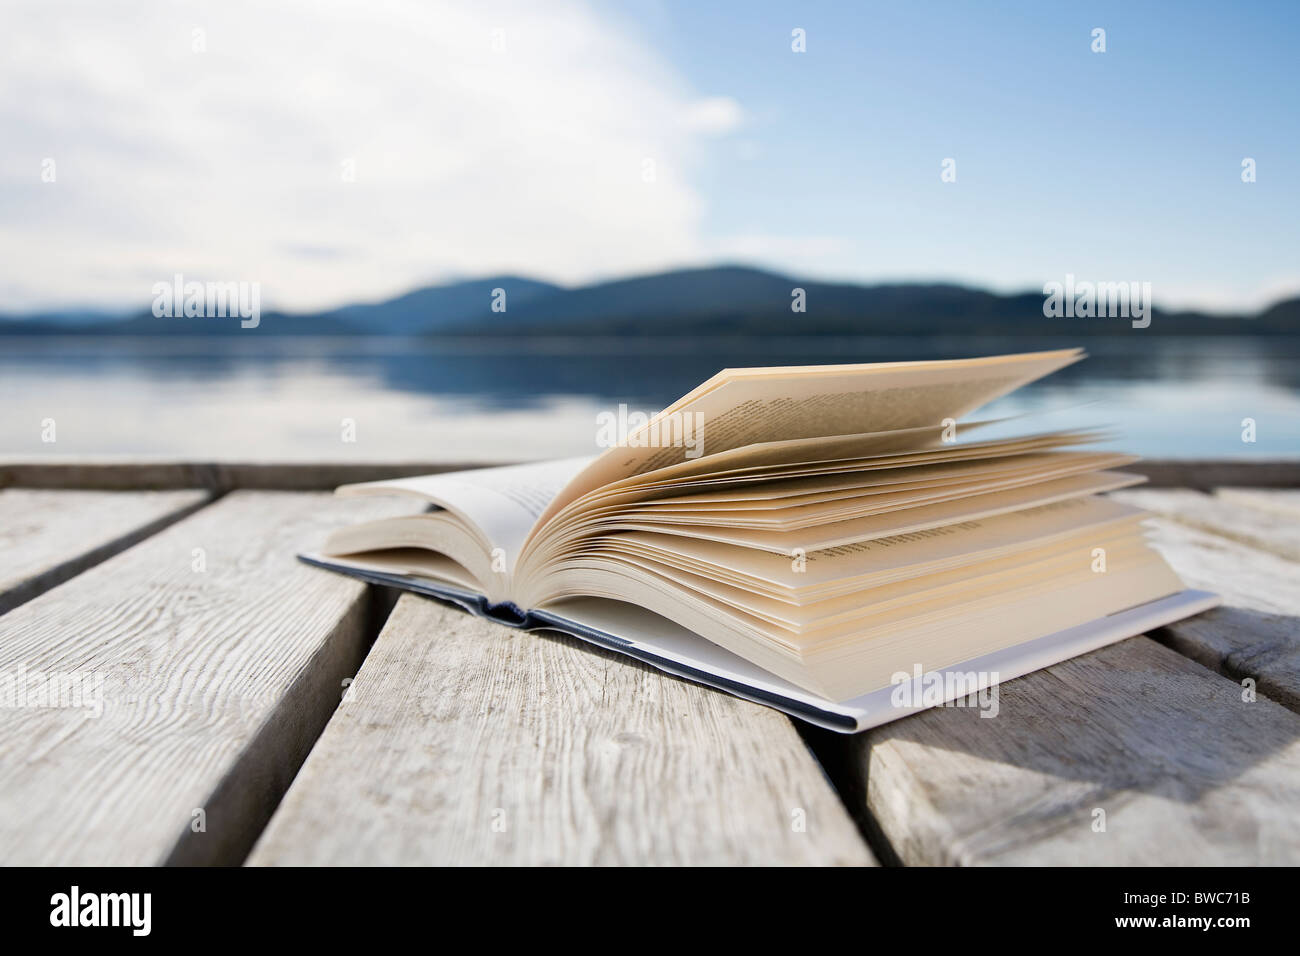 Book on jetty by sea and mountains - Stock Image